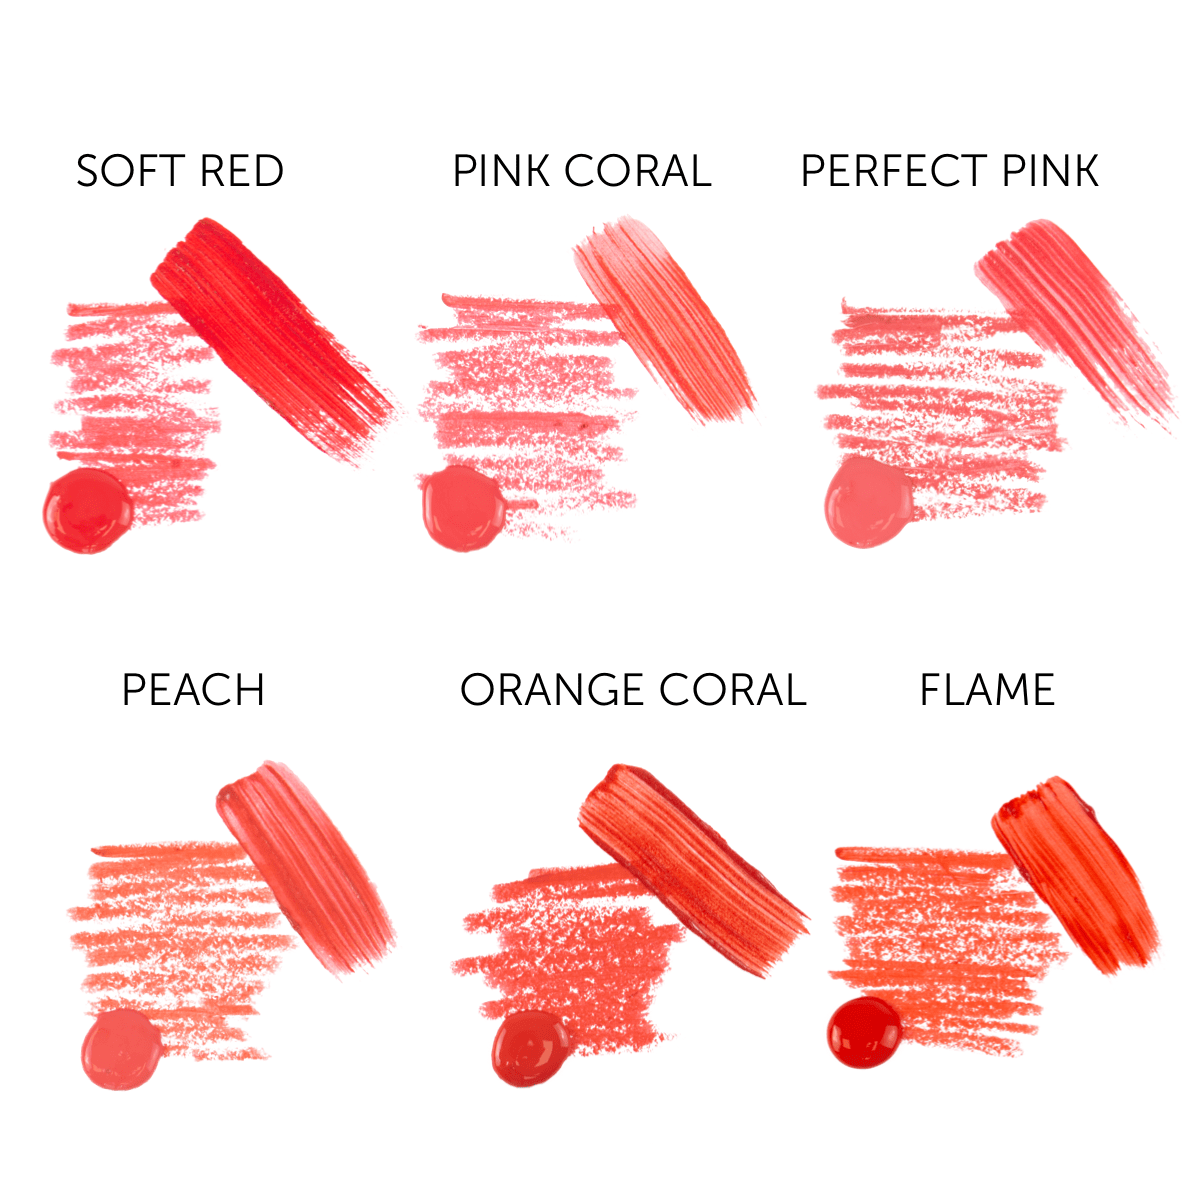 Lust_ProductImage_Swatches-min_2000x.png